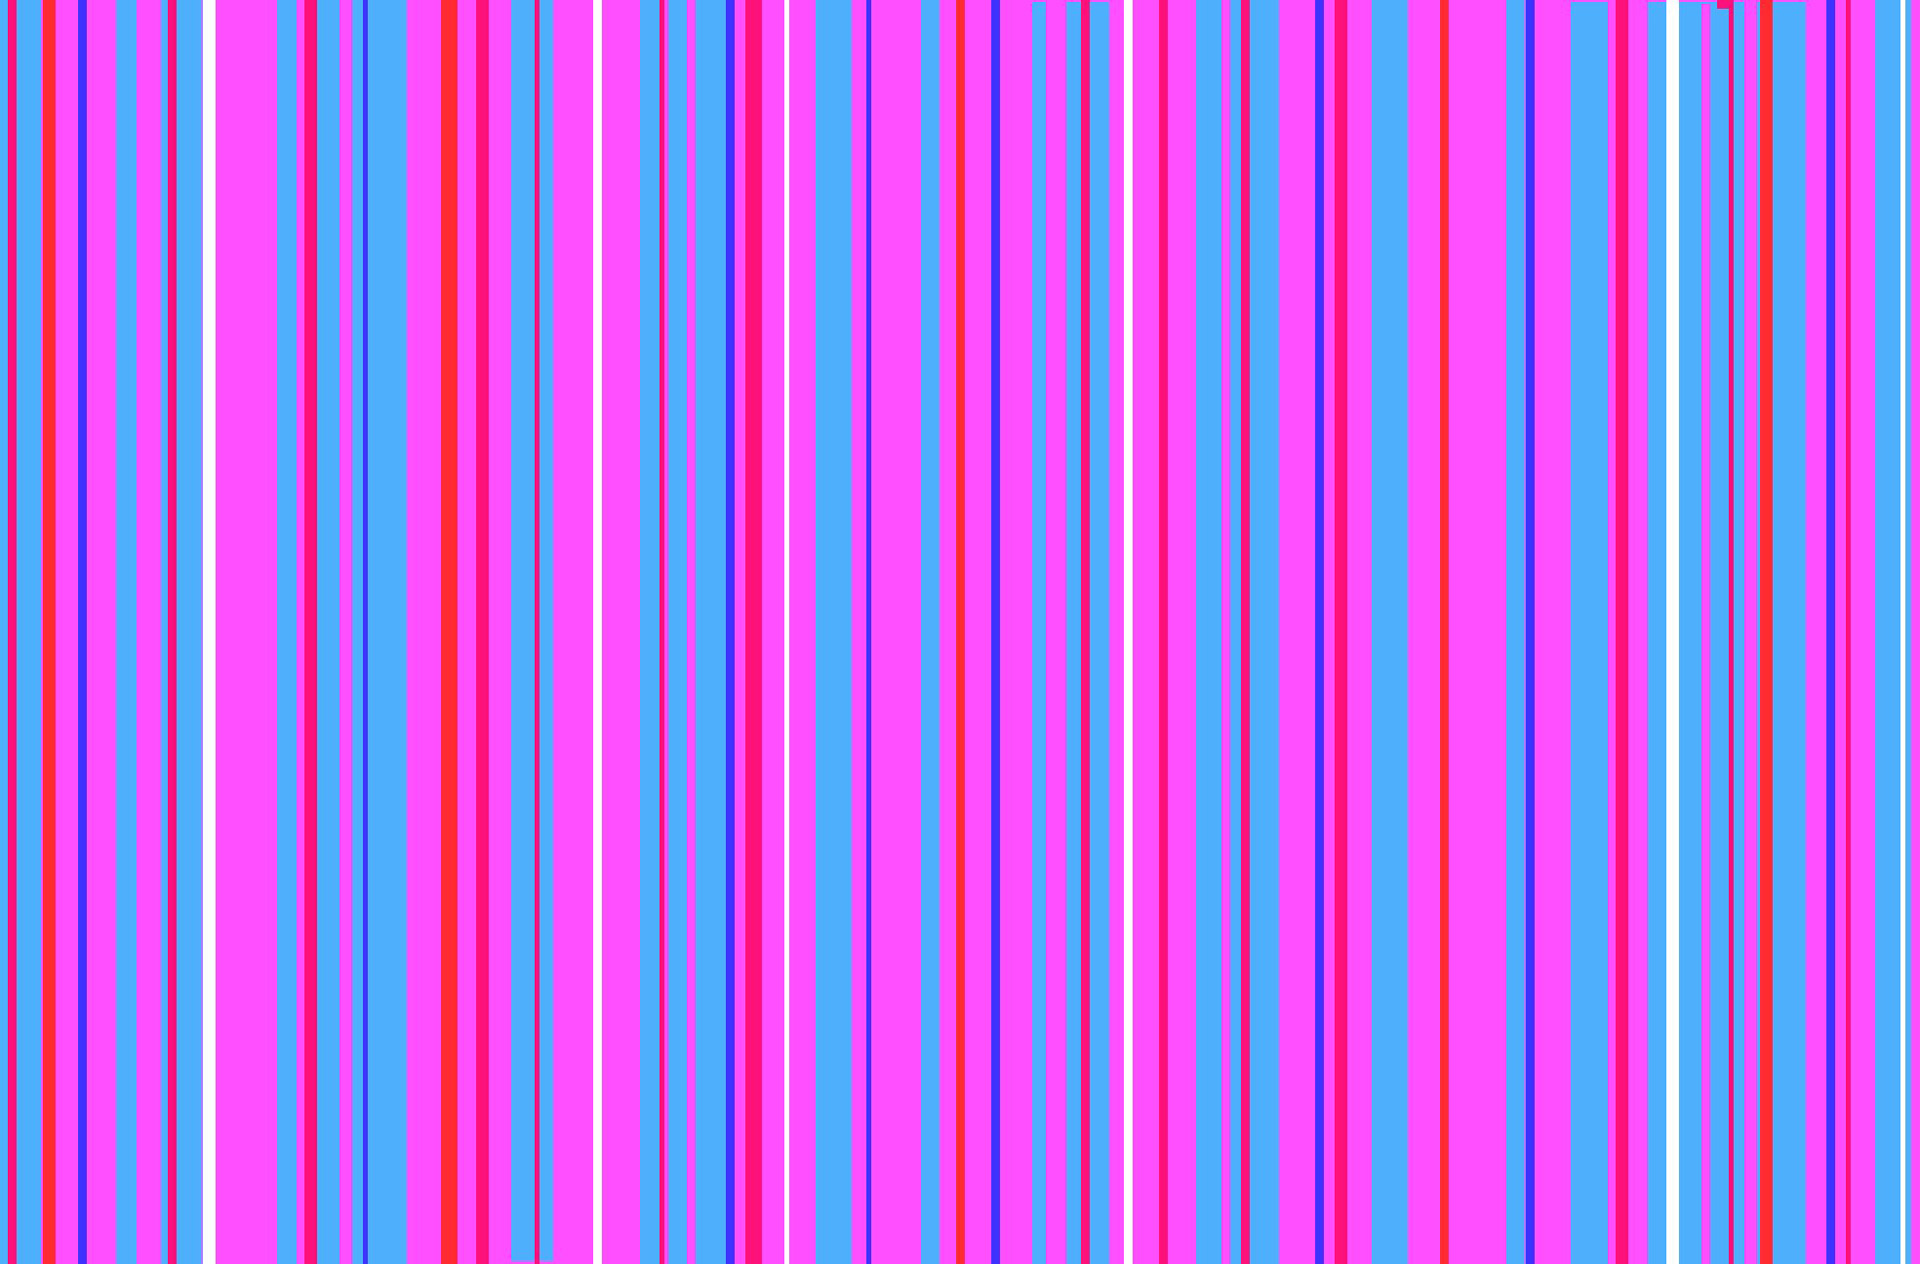 Wallpaper For Iphone Pink Blue And Pink Stripes Free Stock Photo Public Domain